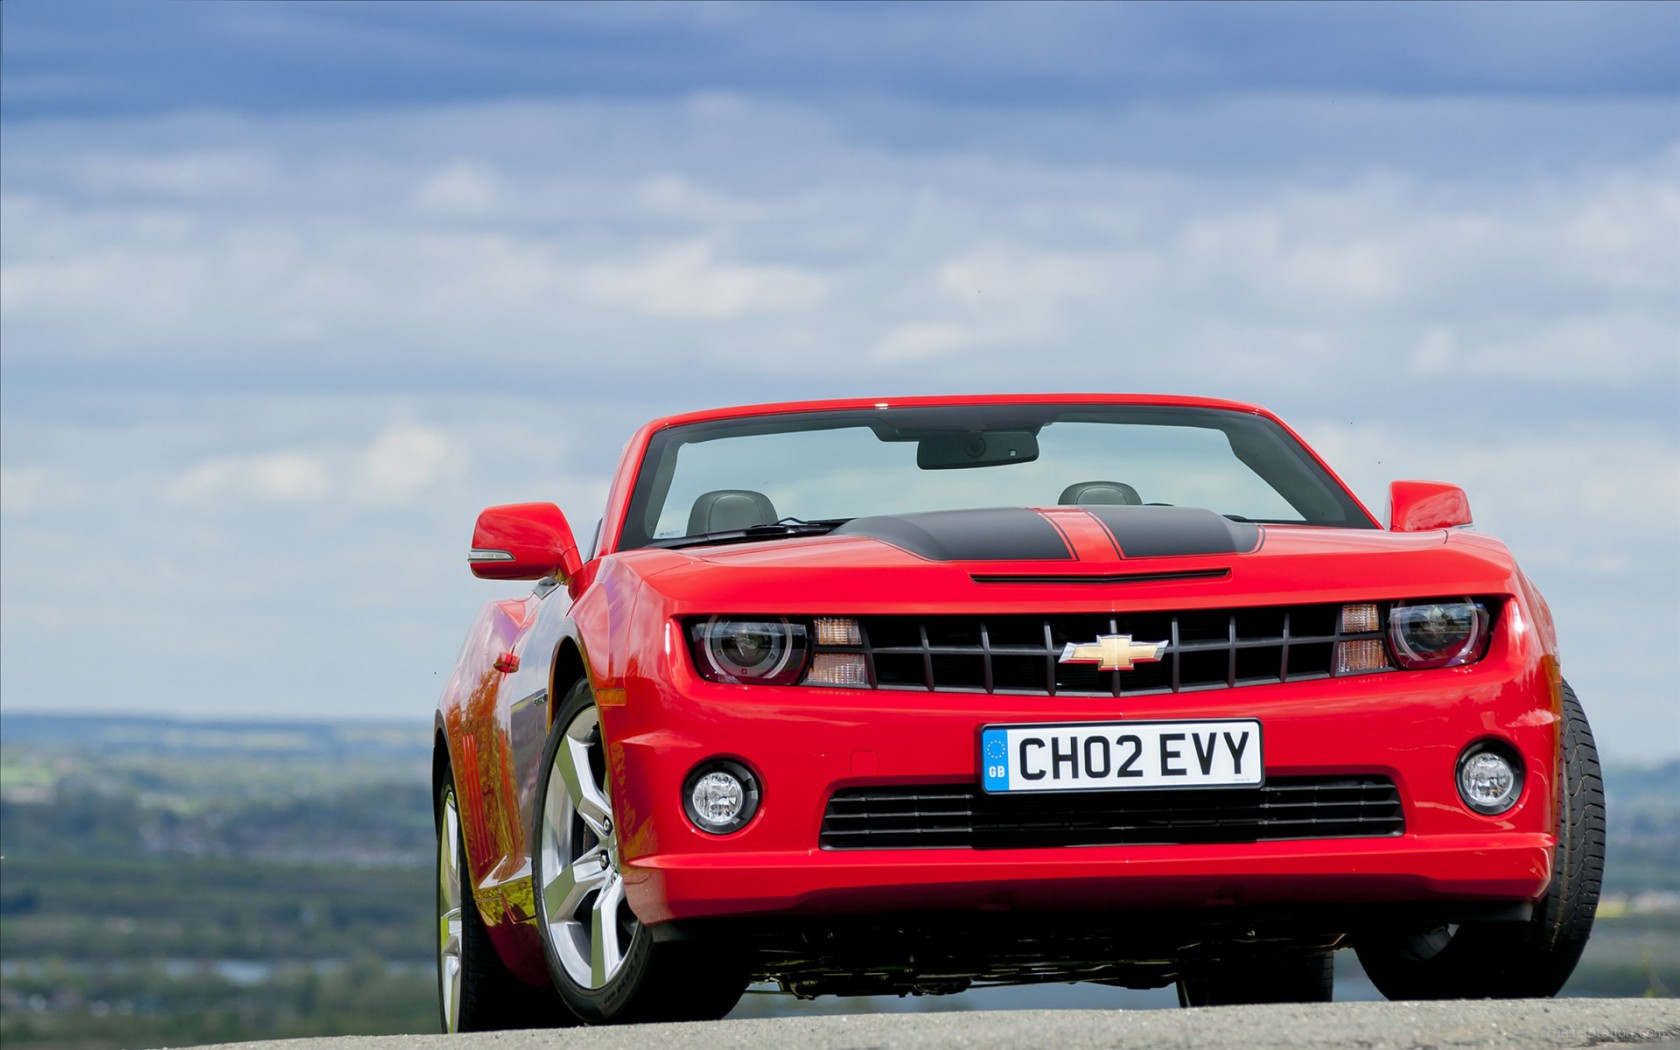 2012 Chevrolet Camaro Convertible Wallpaper Hd Car